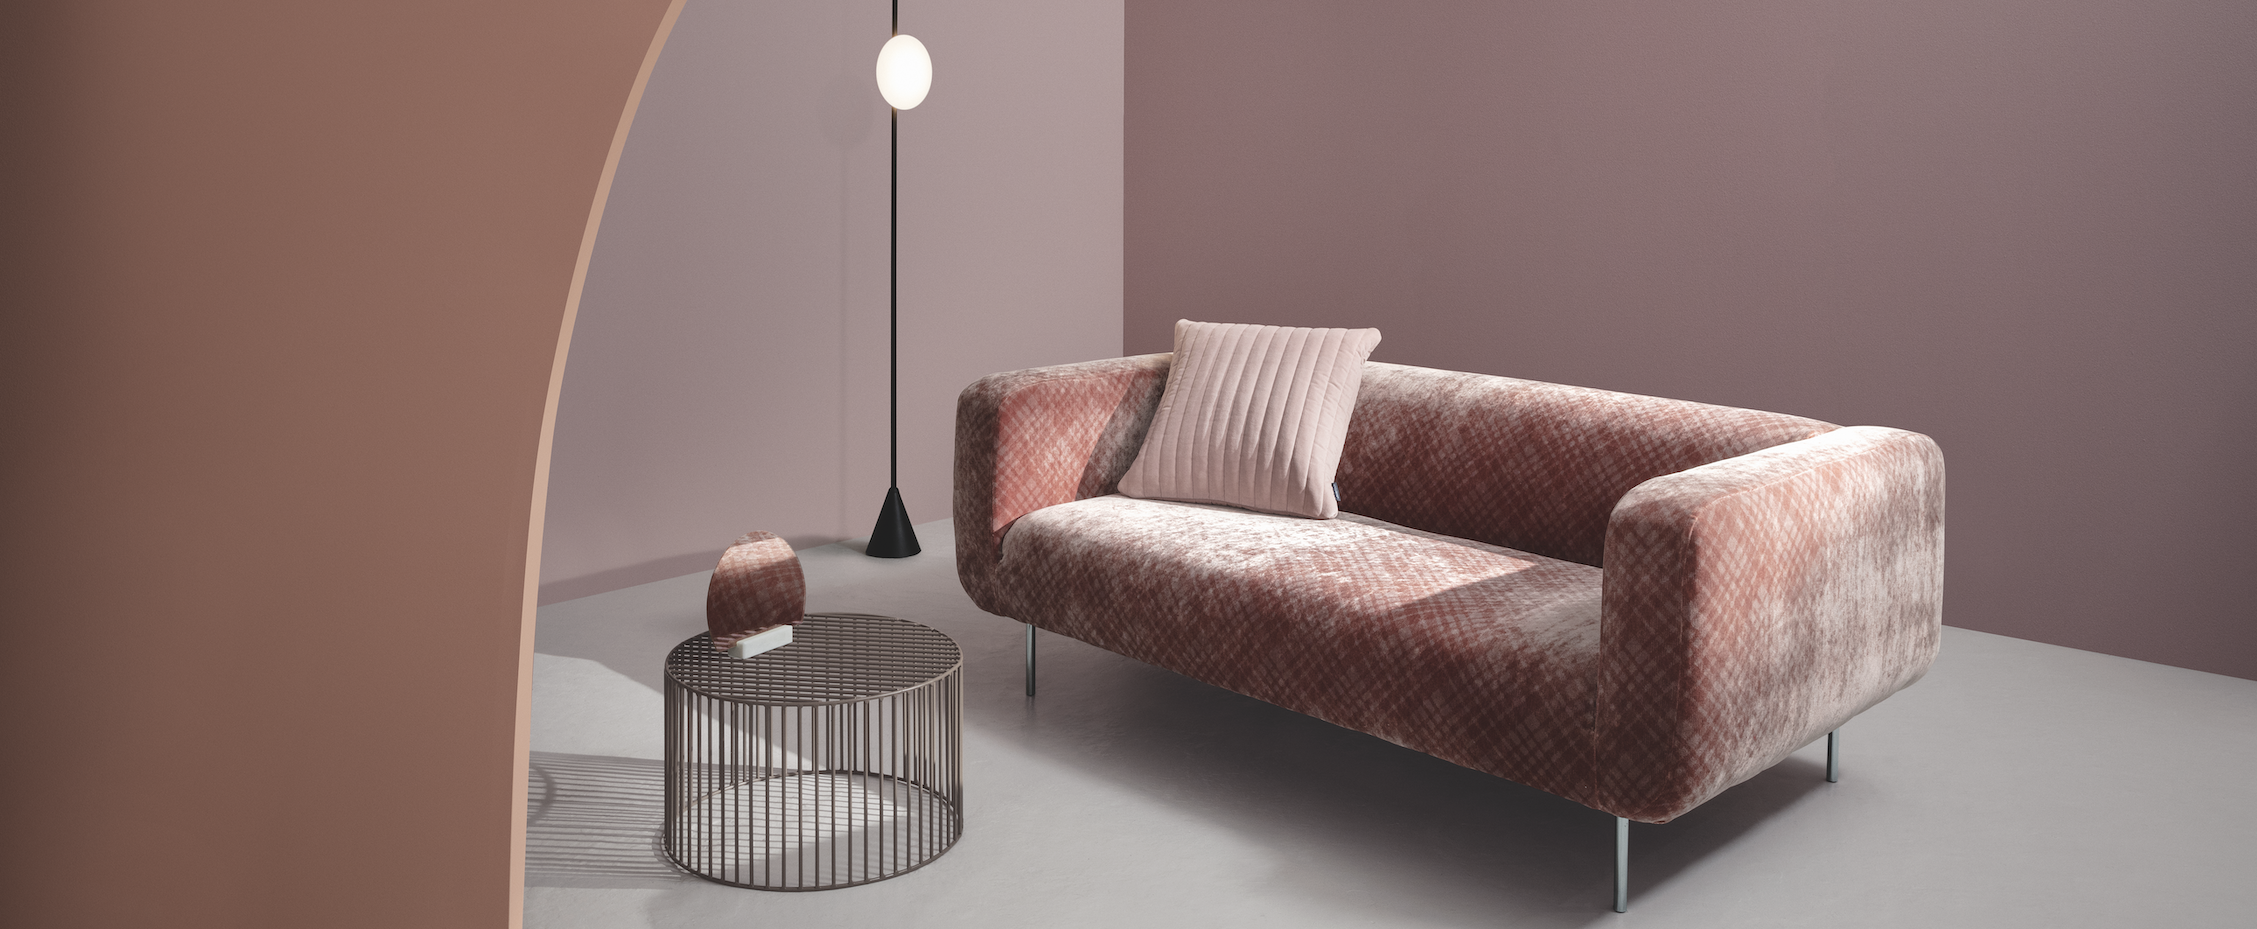 MASTERS EXPO exhibitor Co van der Horst's online home couture event